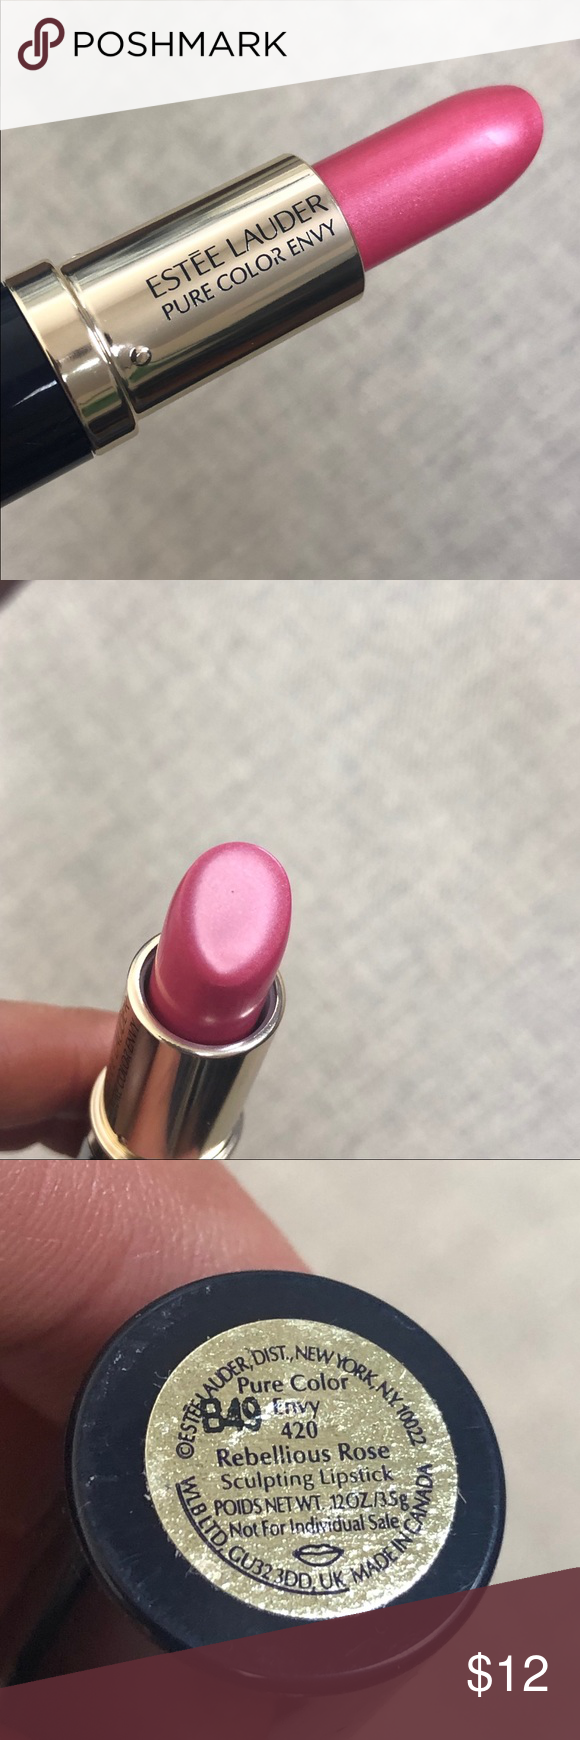 Estée Lauder Lipstick In Rebellious Rose Envy 420 New Estée Lauder Pure Color Envy Lipstick Estee Lauder Lipstick Estee Lauder Pure Color Envy Pure Color Envy